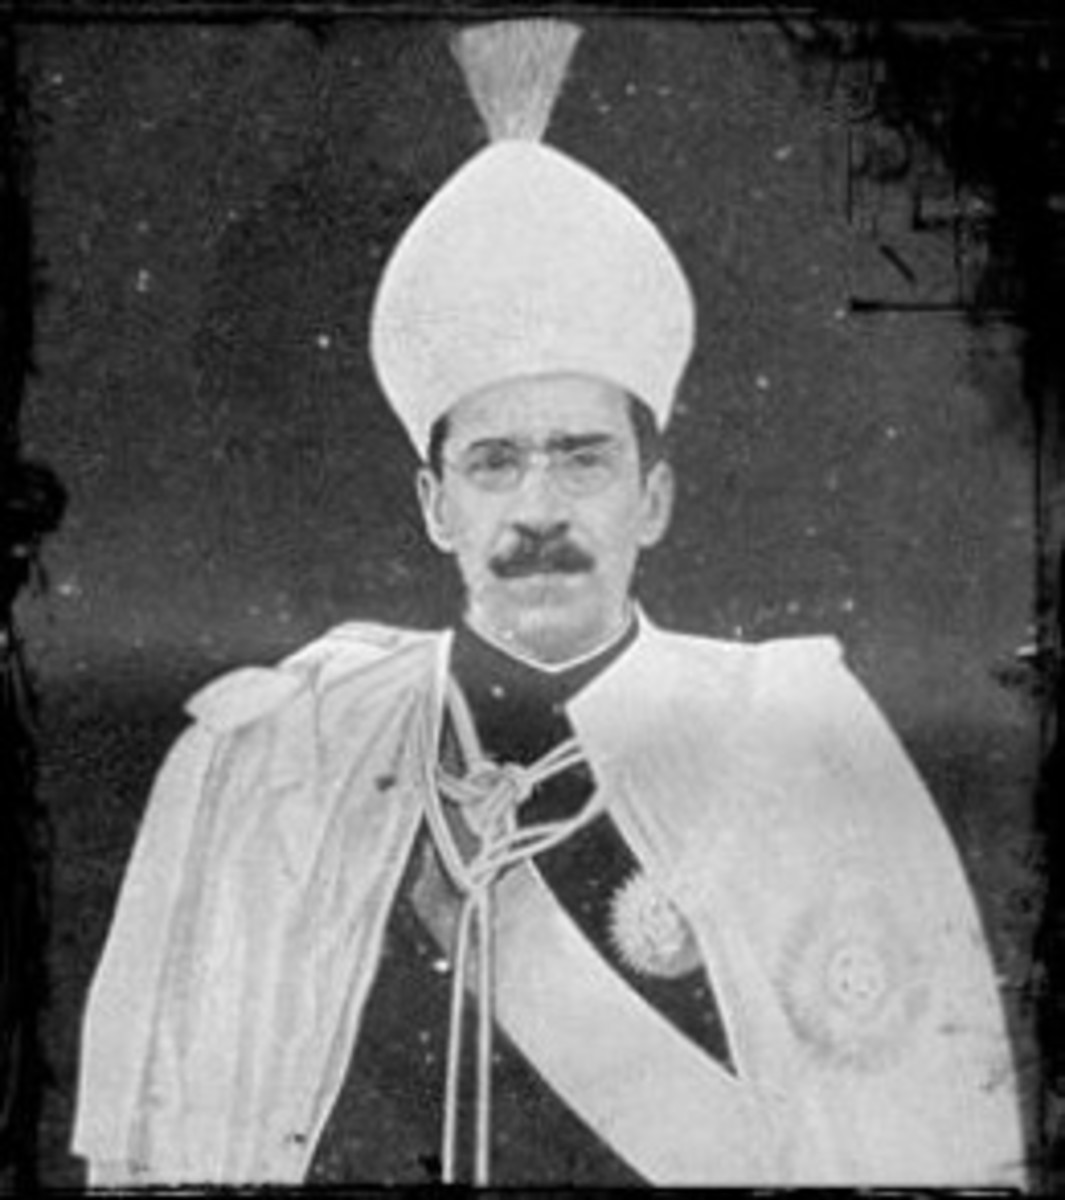 Hyderabad Nizam. Osman Ali Khan